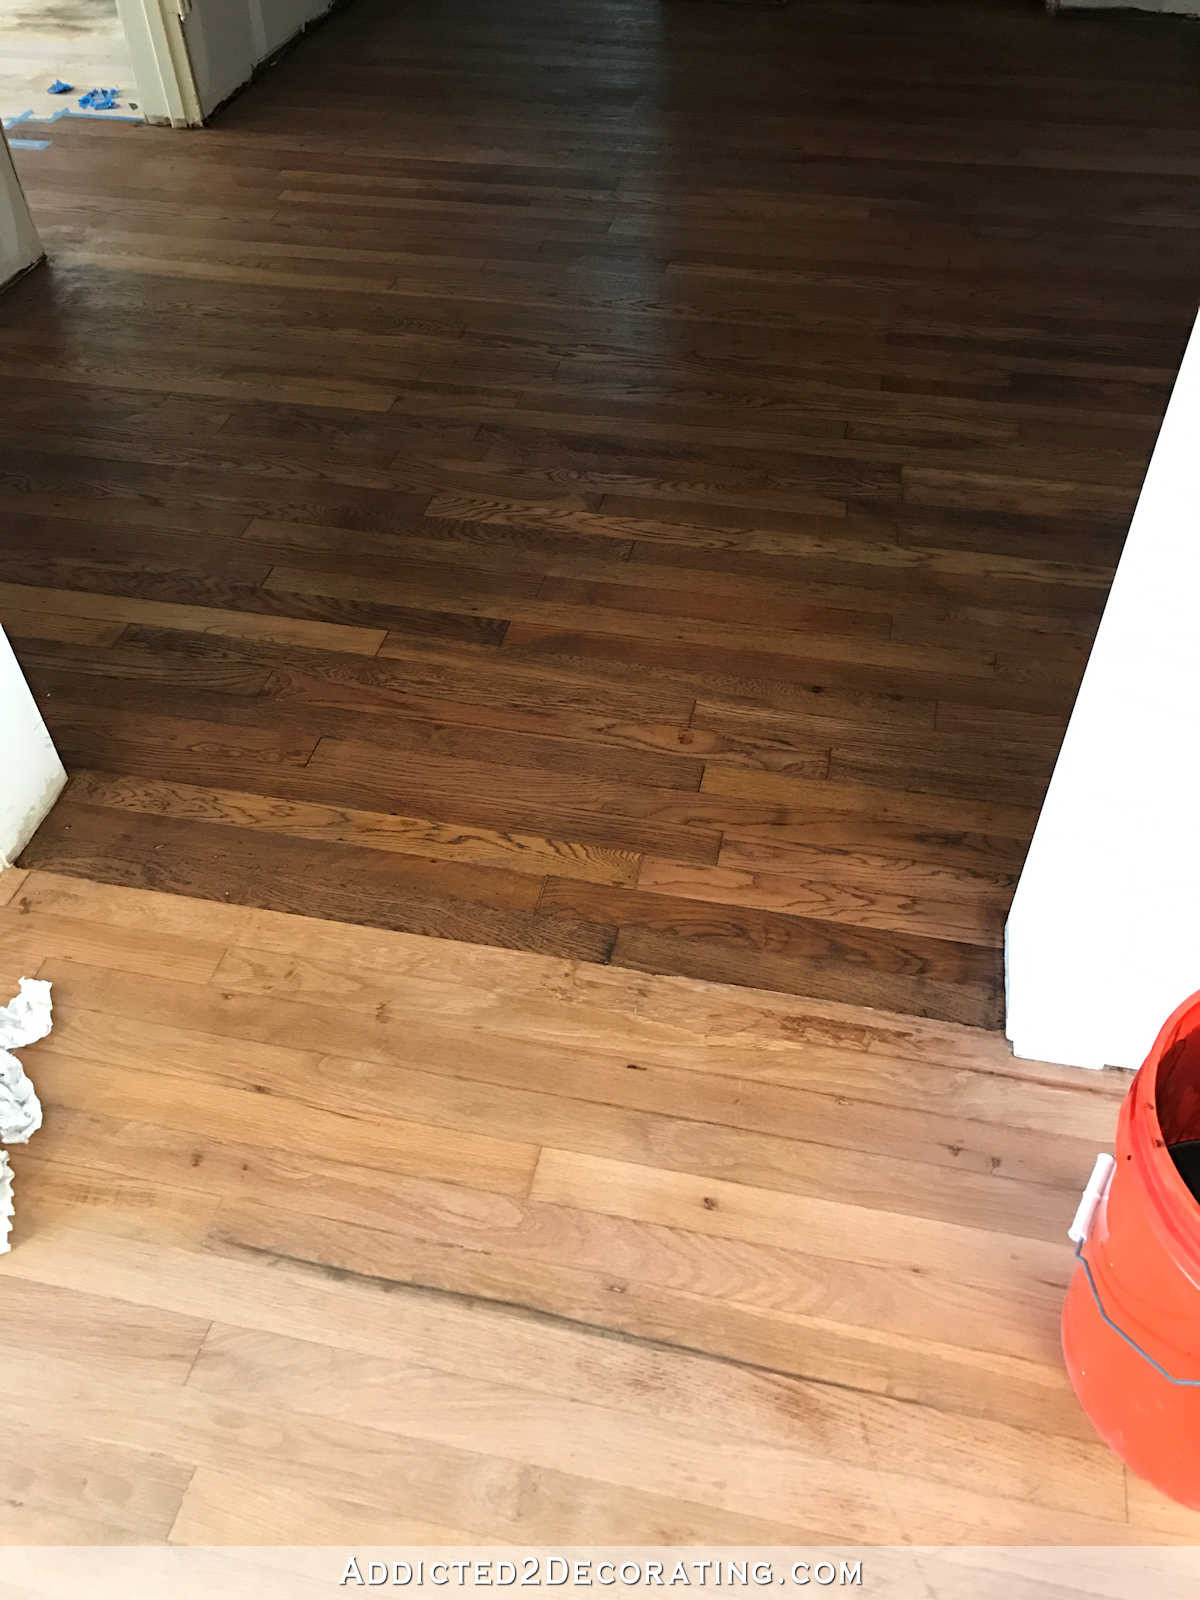 hardwood floor refinishing denver co of adventures in staining my red oak hardwood floors products process inside staining red oak hardwood floors 2 tape off one section at a time for